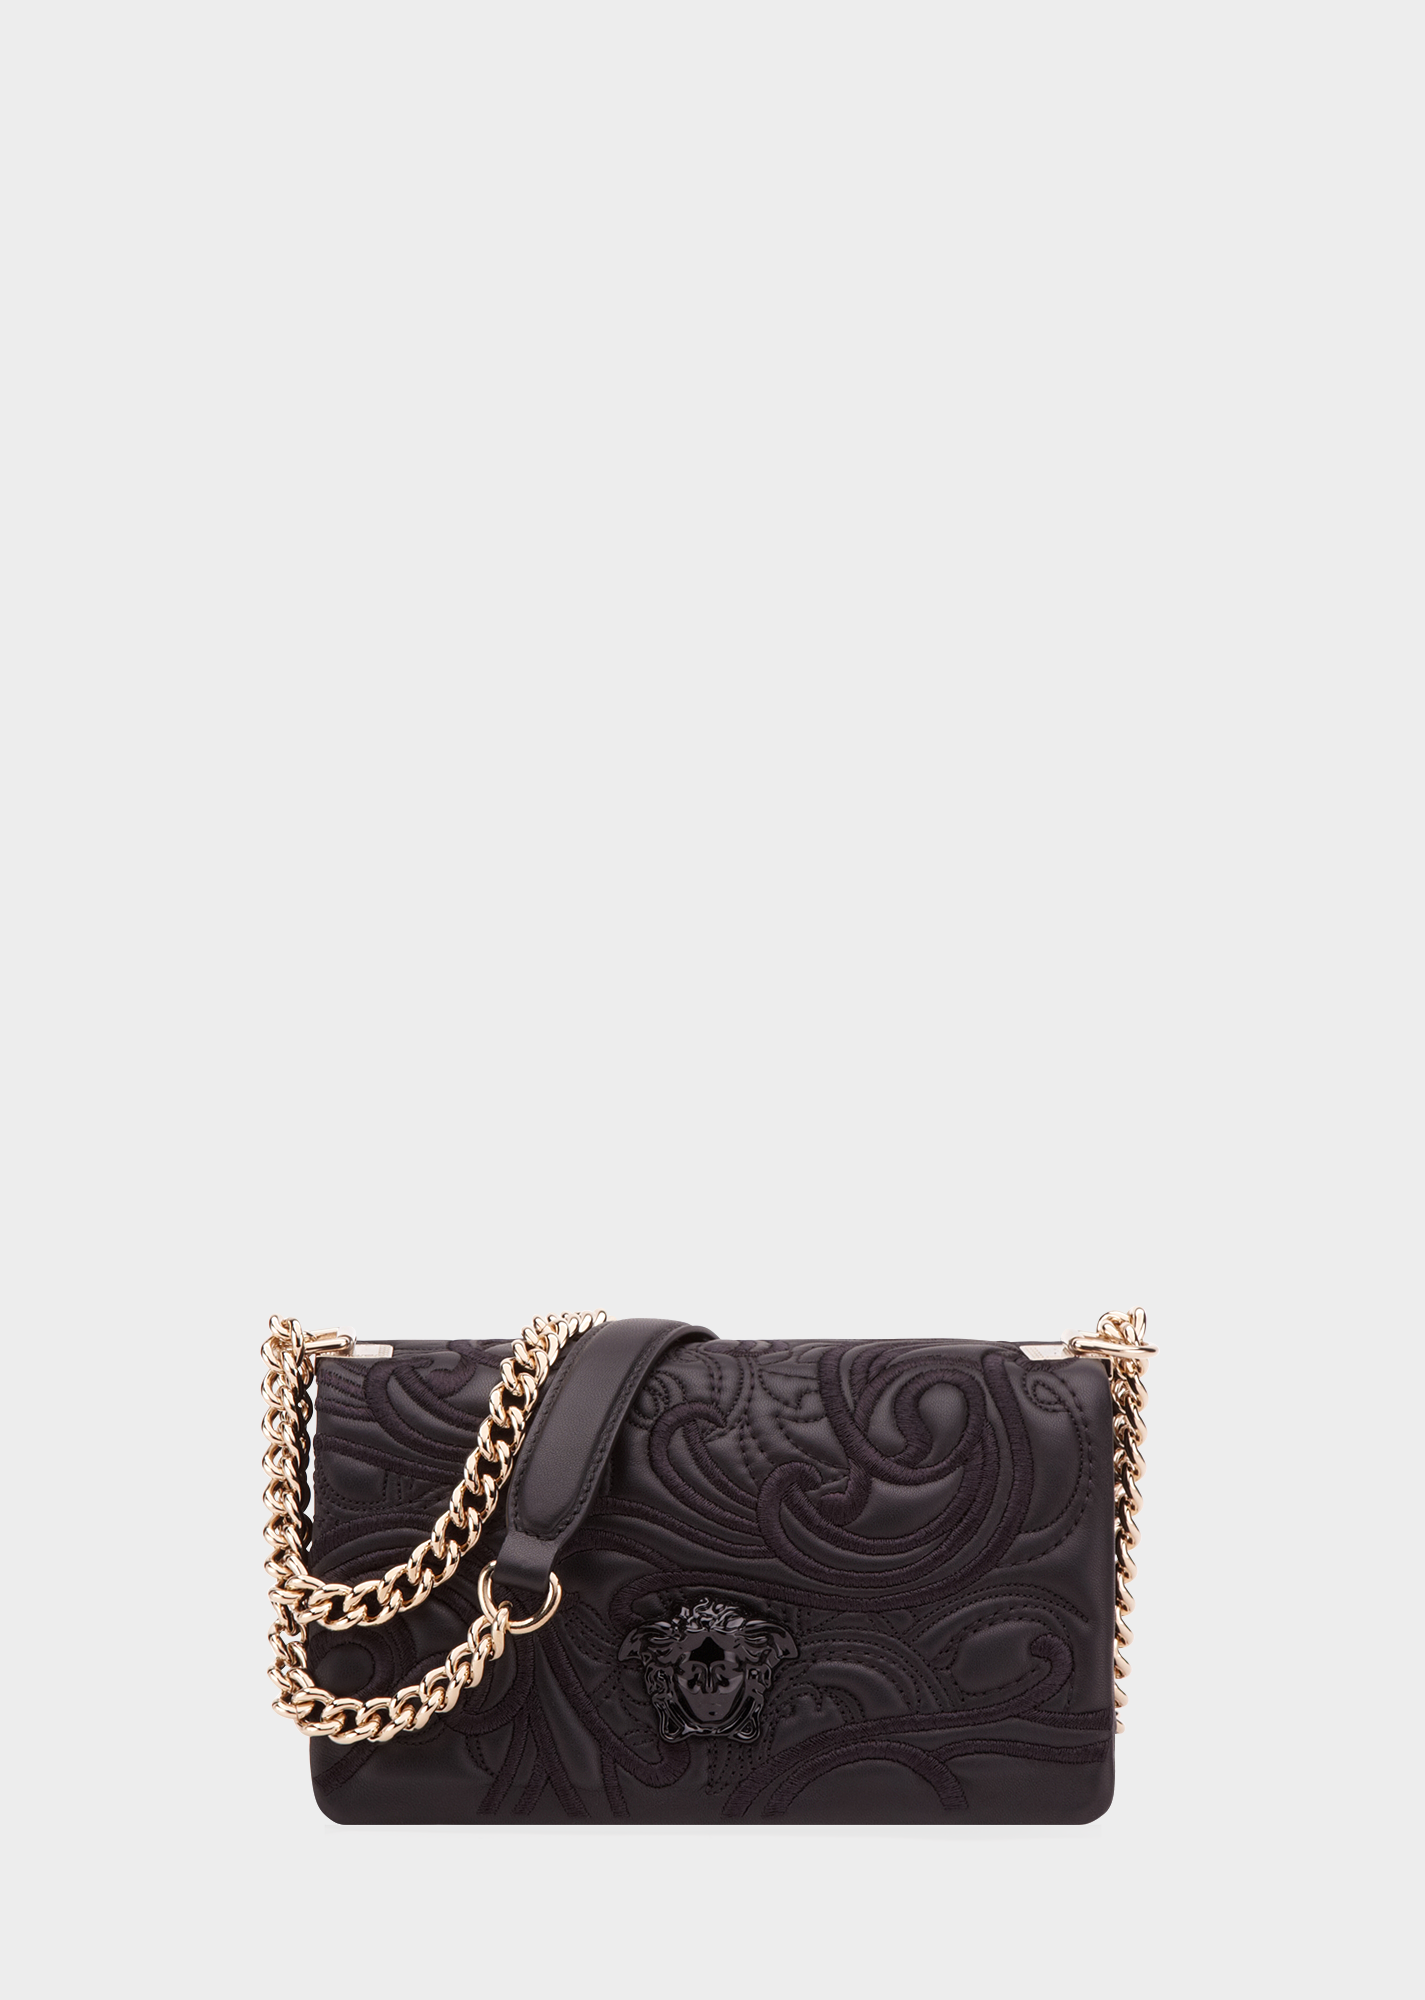 4057a775a7 Embroidered Baroque Sultan Bag for Women | US Online Store | Fashion ...